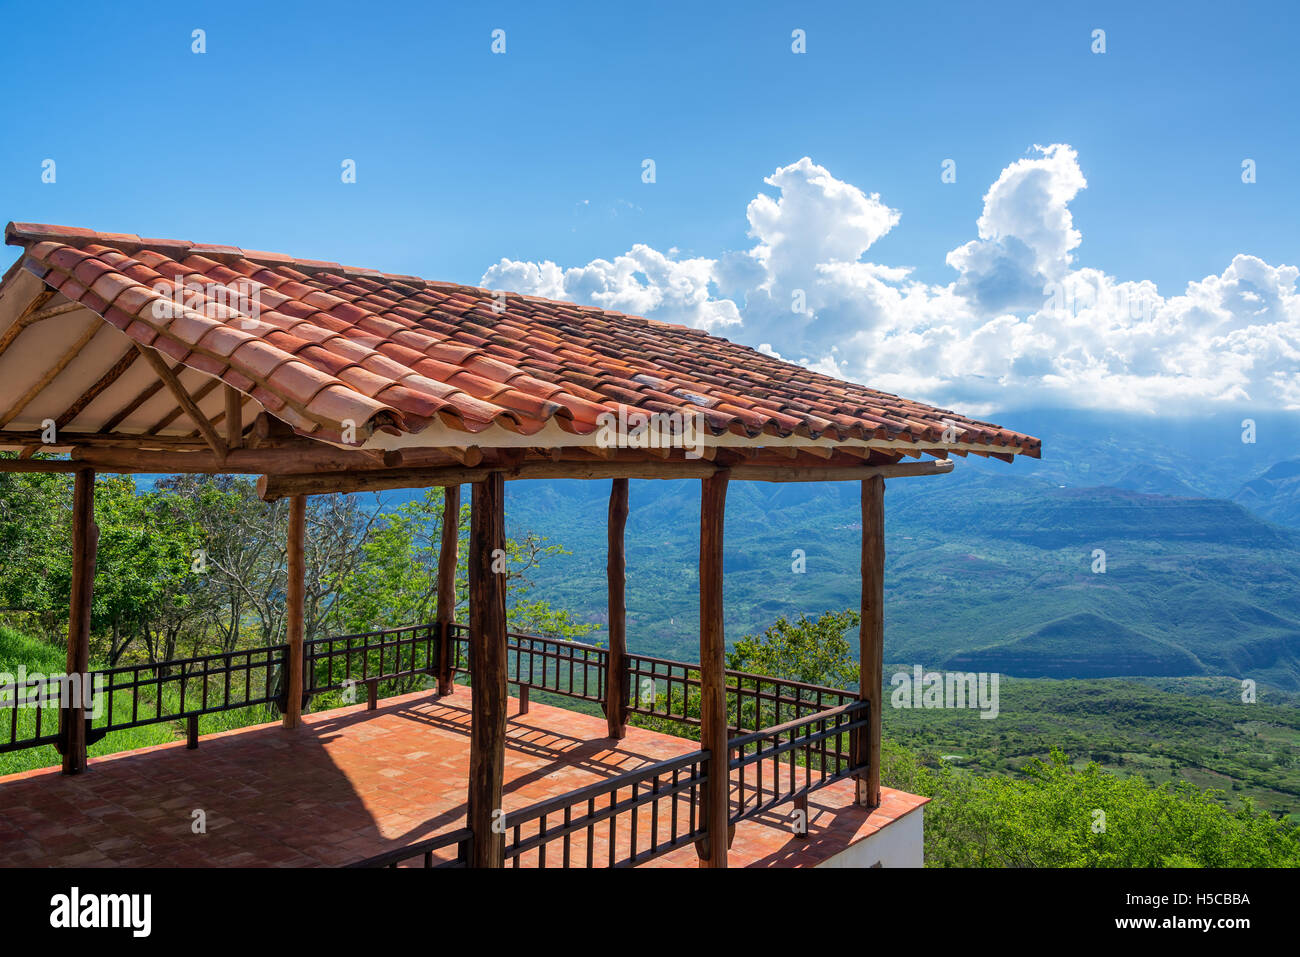 Viewpoint on the outskirts of the historic colonial village of Barichara, Colombia - Stock Image